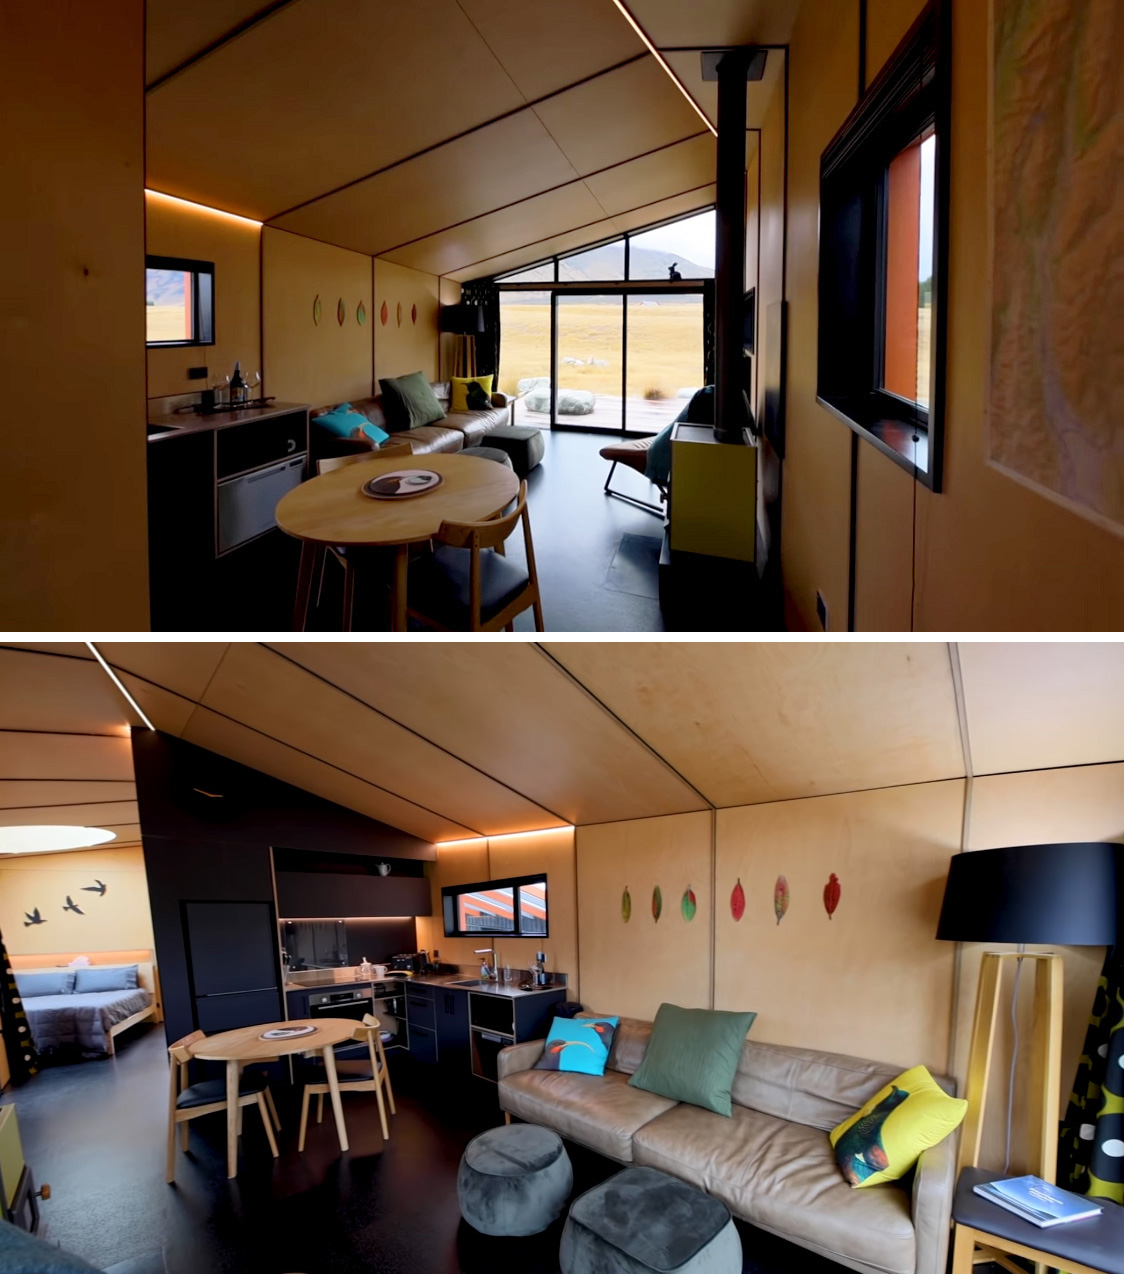 Stepping inside this small cabin, and the living room and kitchen share an open space the look towards the wall of glass at the end of the room. The interior is lined with light Beech plywood to create a warm and cozy environment.